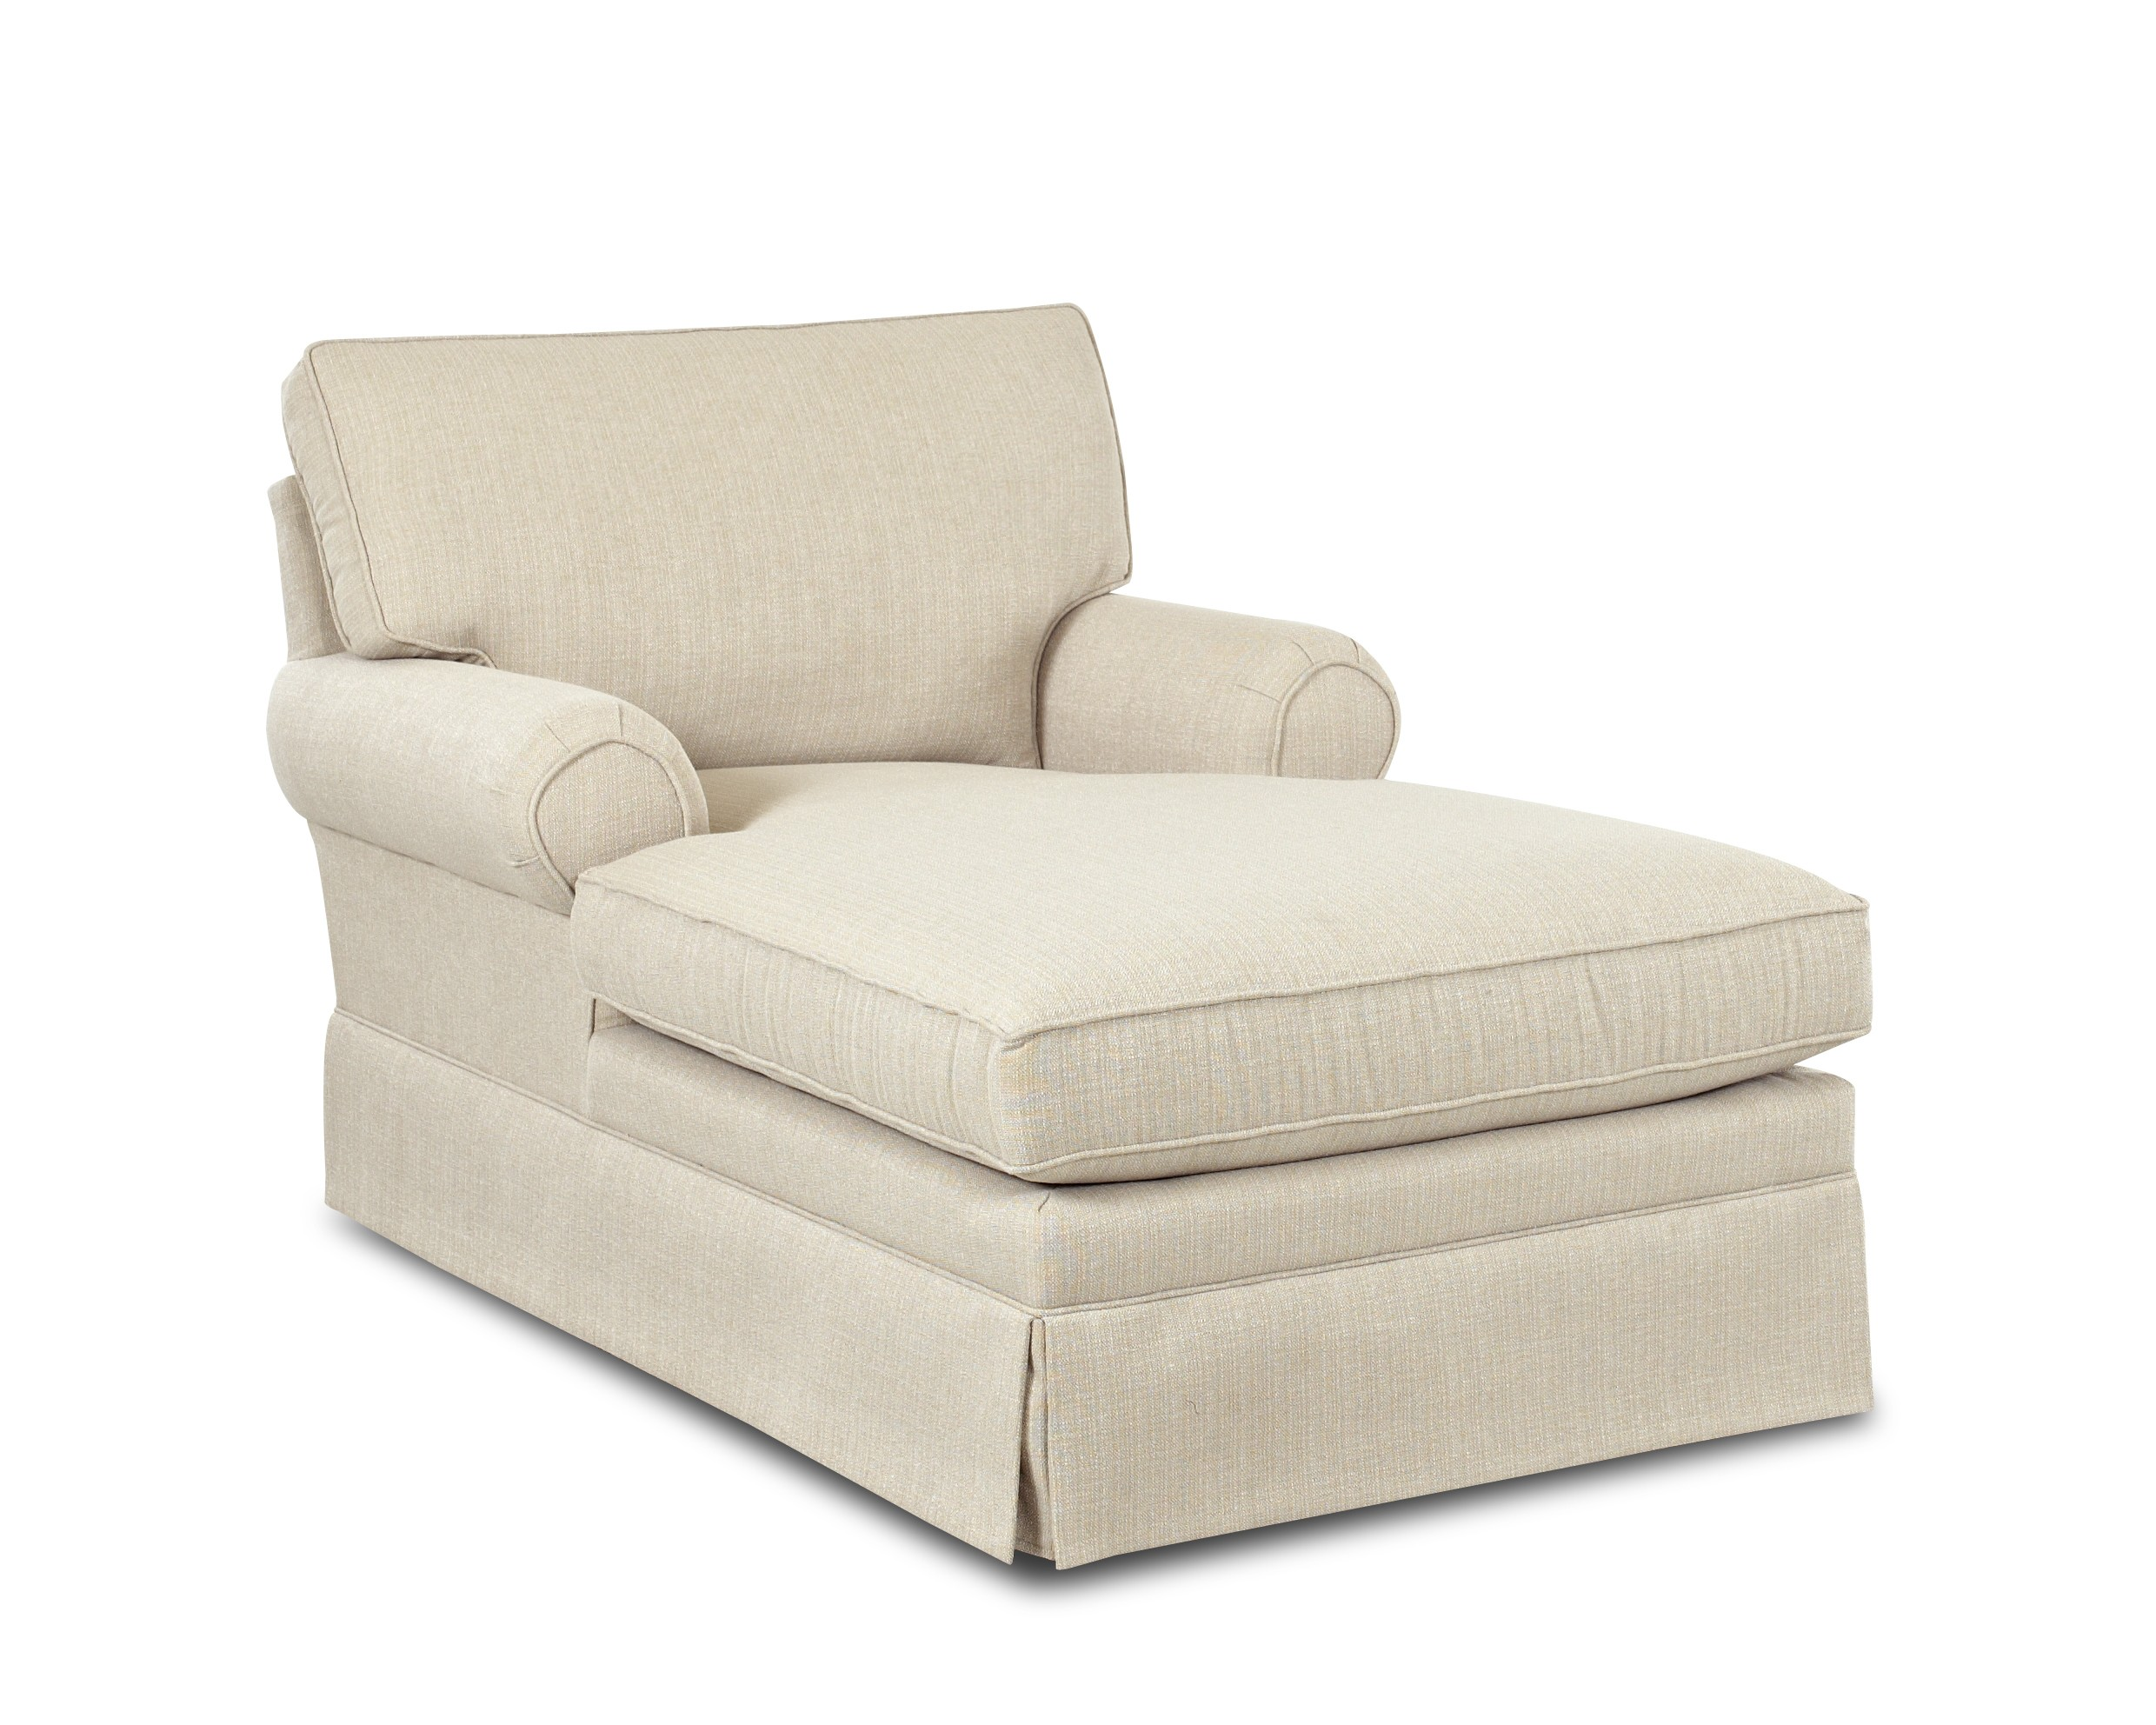 Carolina Slipcover Chaise Lounge  sc 1 st  Doerr Furniture : slipcovers chaise lounge - Sectionals, Sofas & Couches